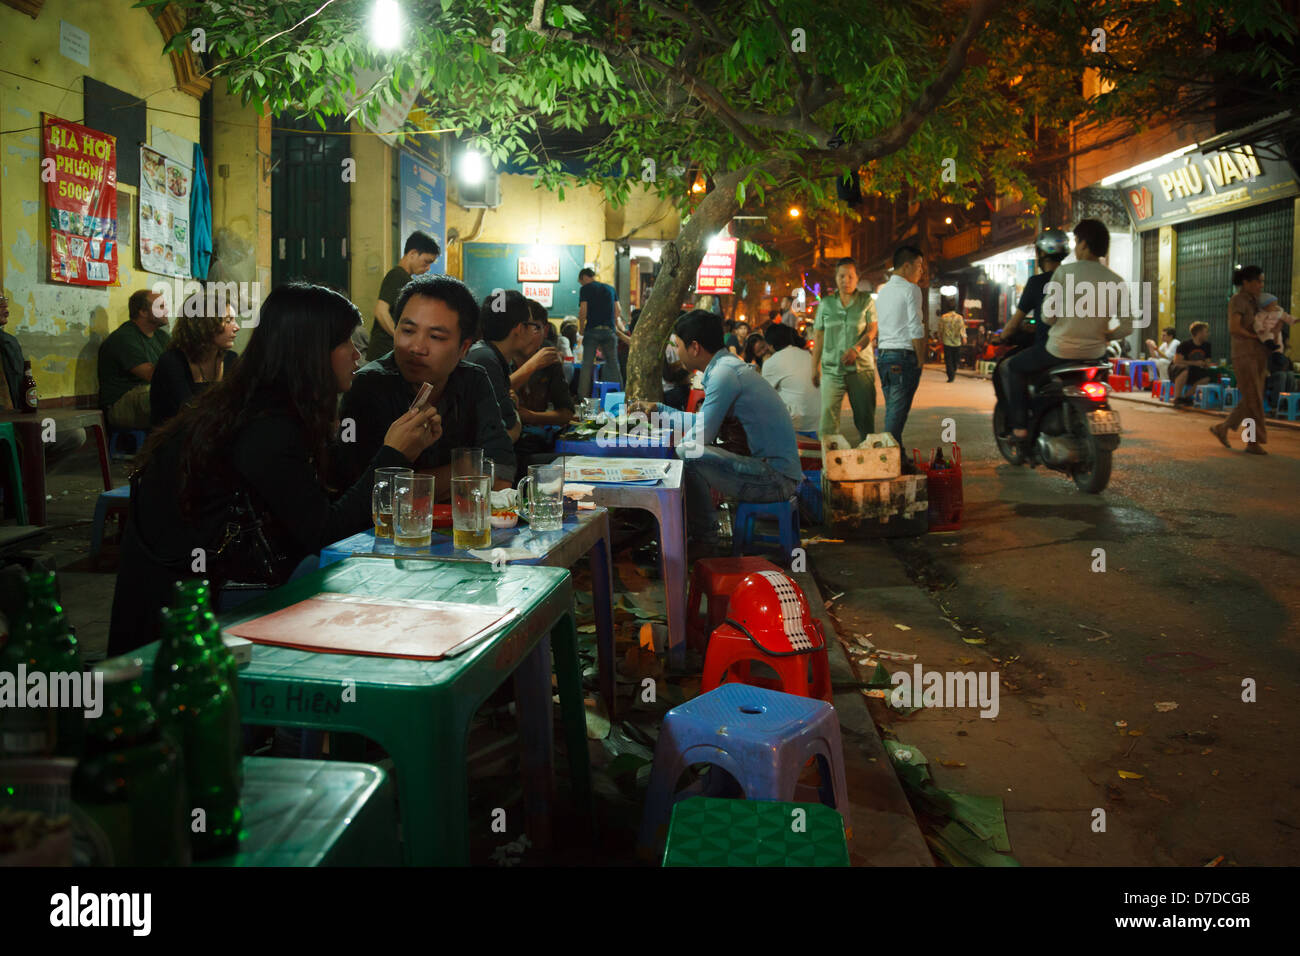 People enjoying bia hơi (Draught Beer) at a street outlet on the streets of the Old Quarter in Hanoi, Vietnam - Stock Image